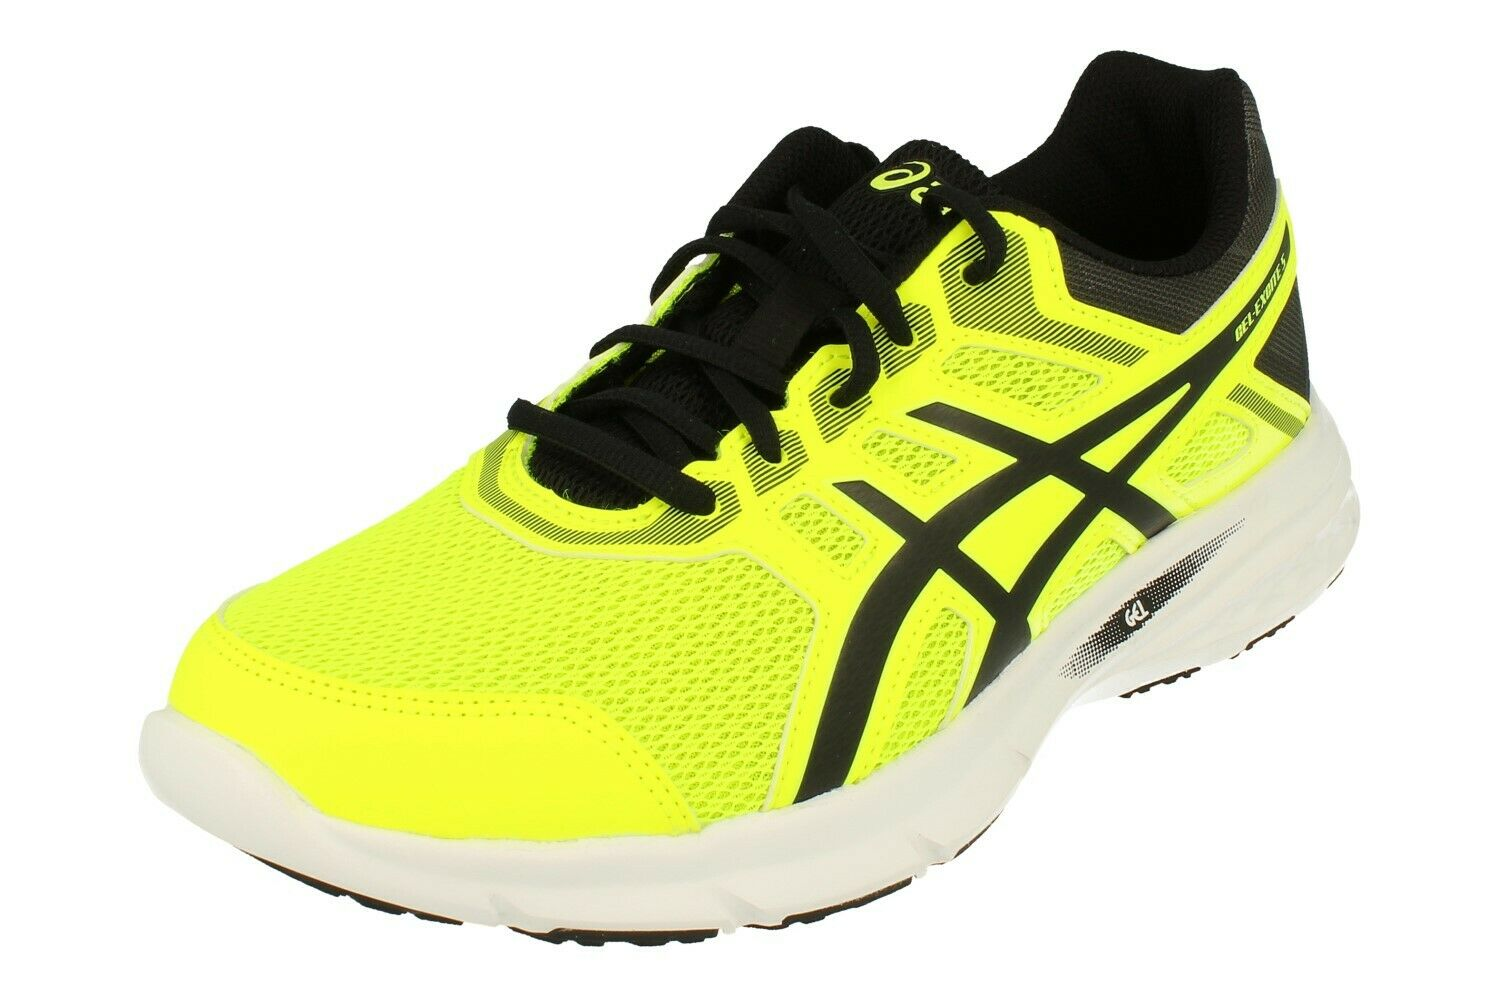 Asics Gel-Excite 5 Mens Running Trainers T7F3N Sneakers shoes 750